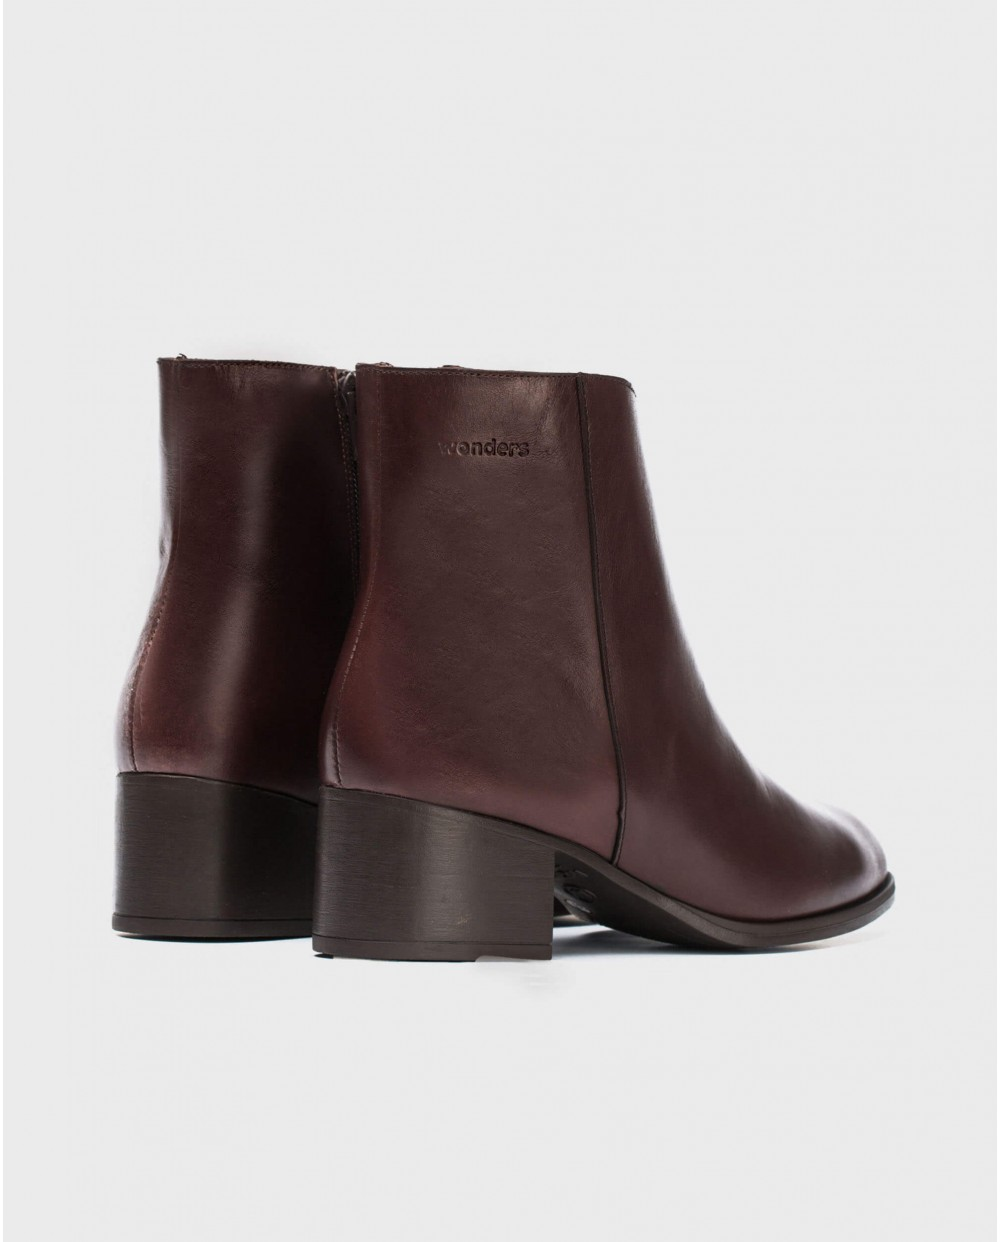 Wonders-Ankle Boots-Leather ankle boot